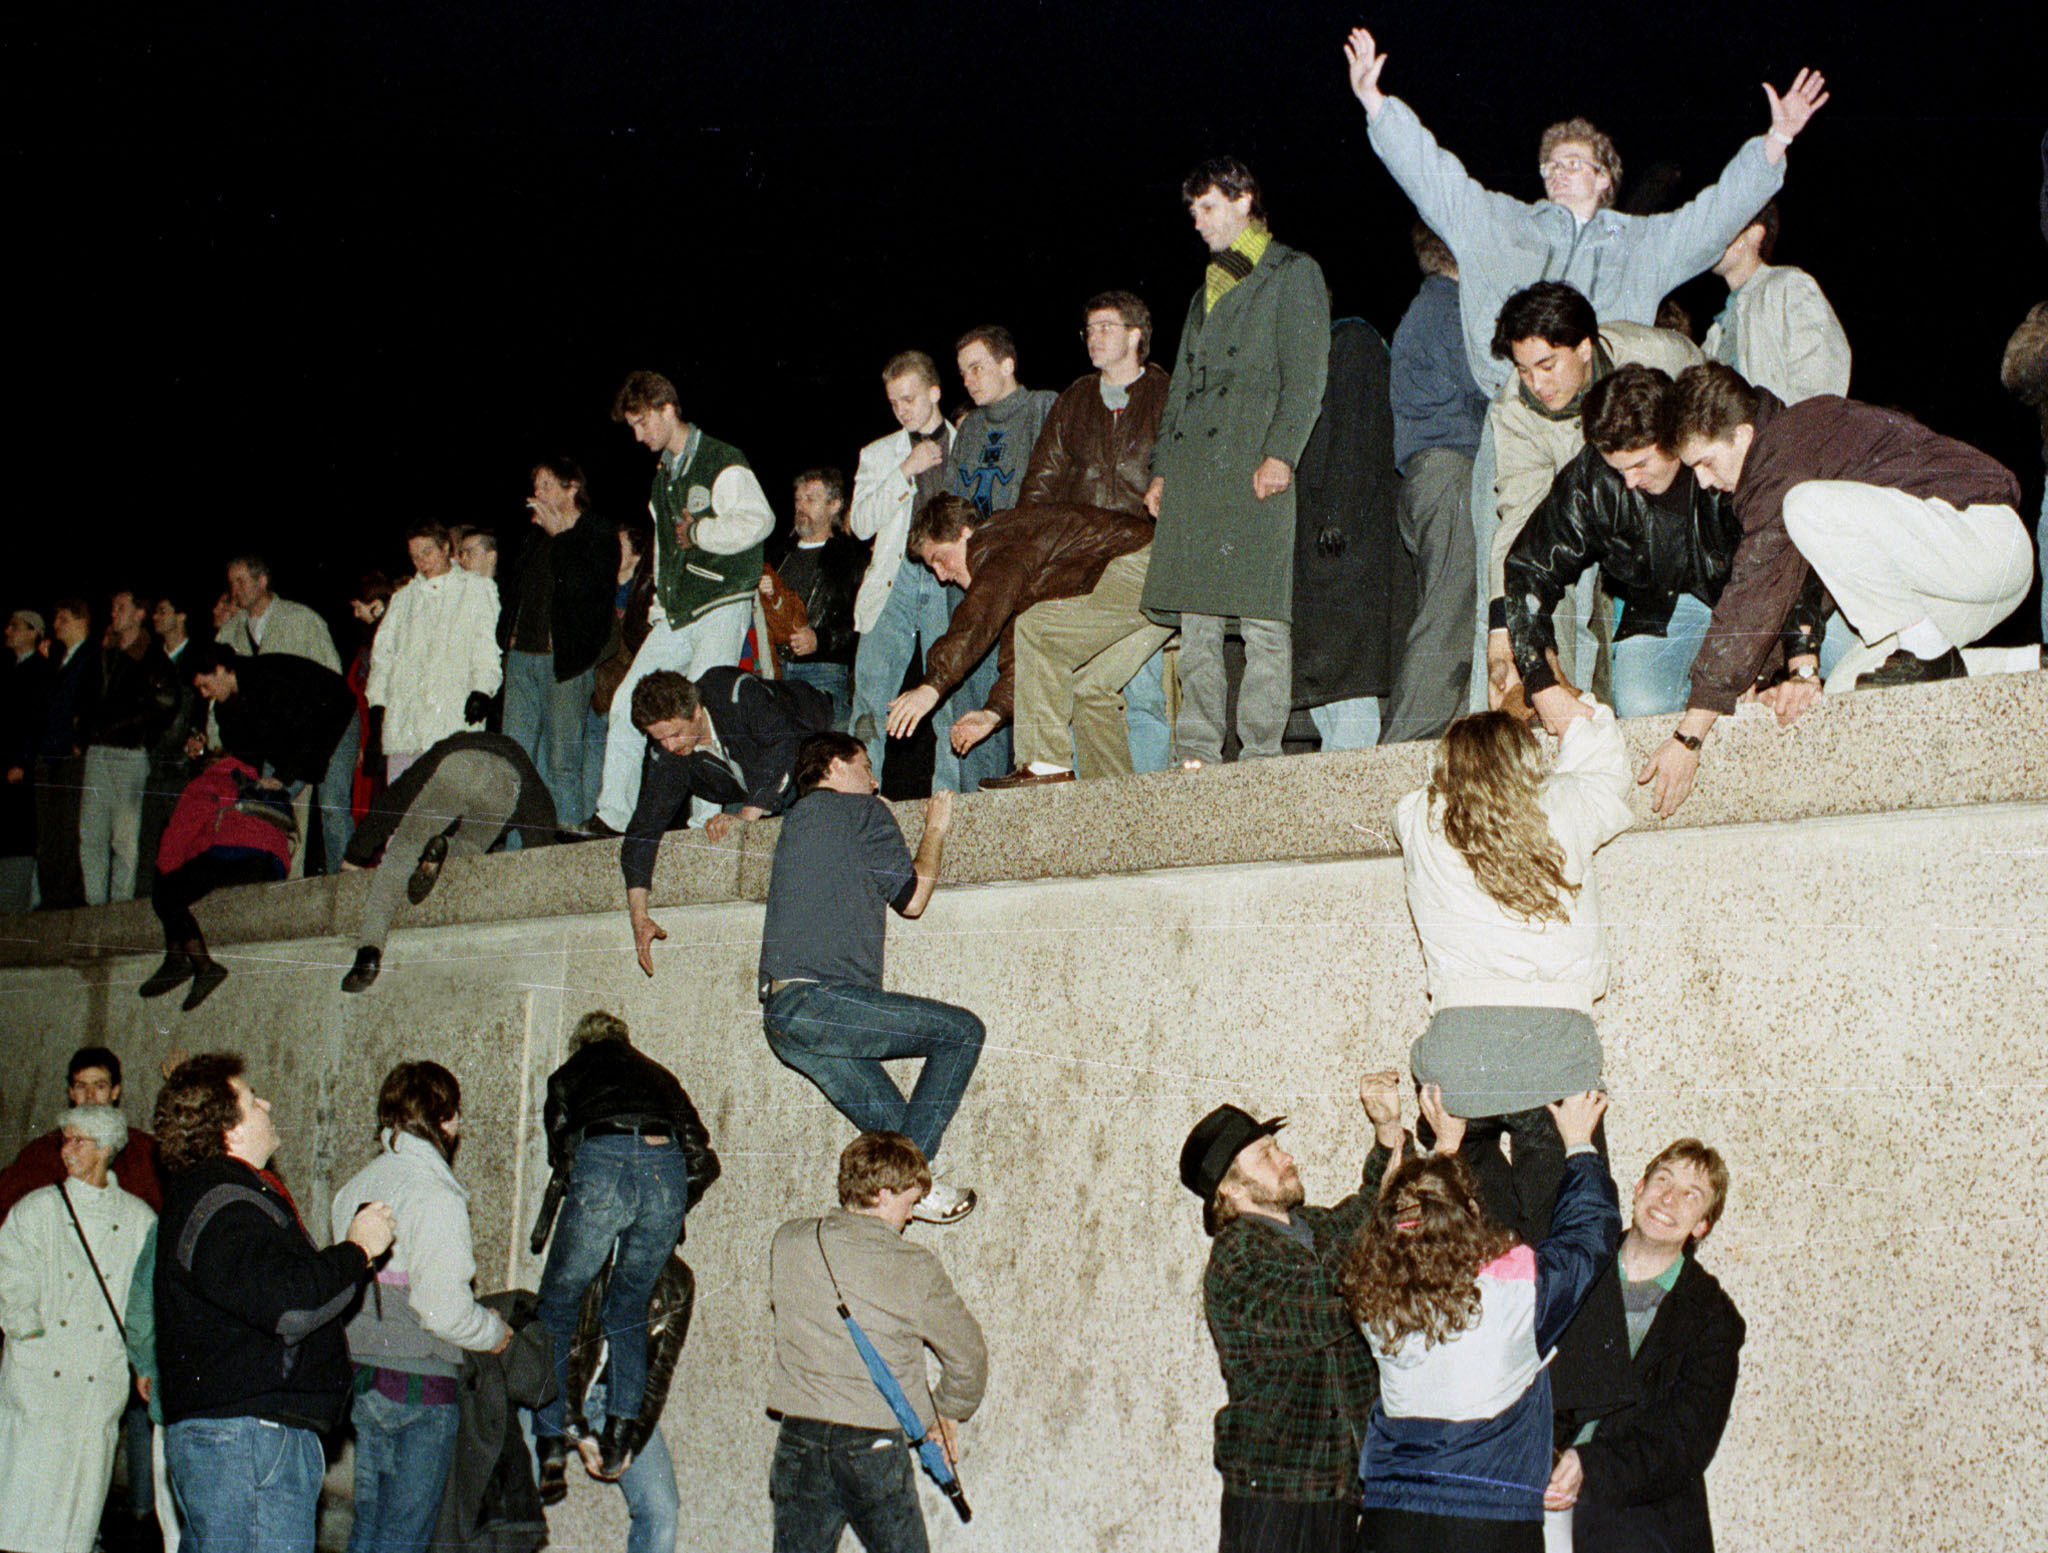 East German citizens climb the Berlin wall at the Brandenburg Gate as they celebrate the opening of the East German border in November 1989